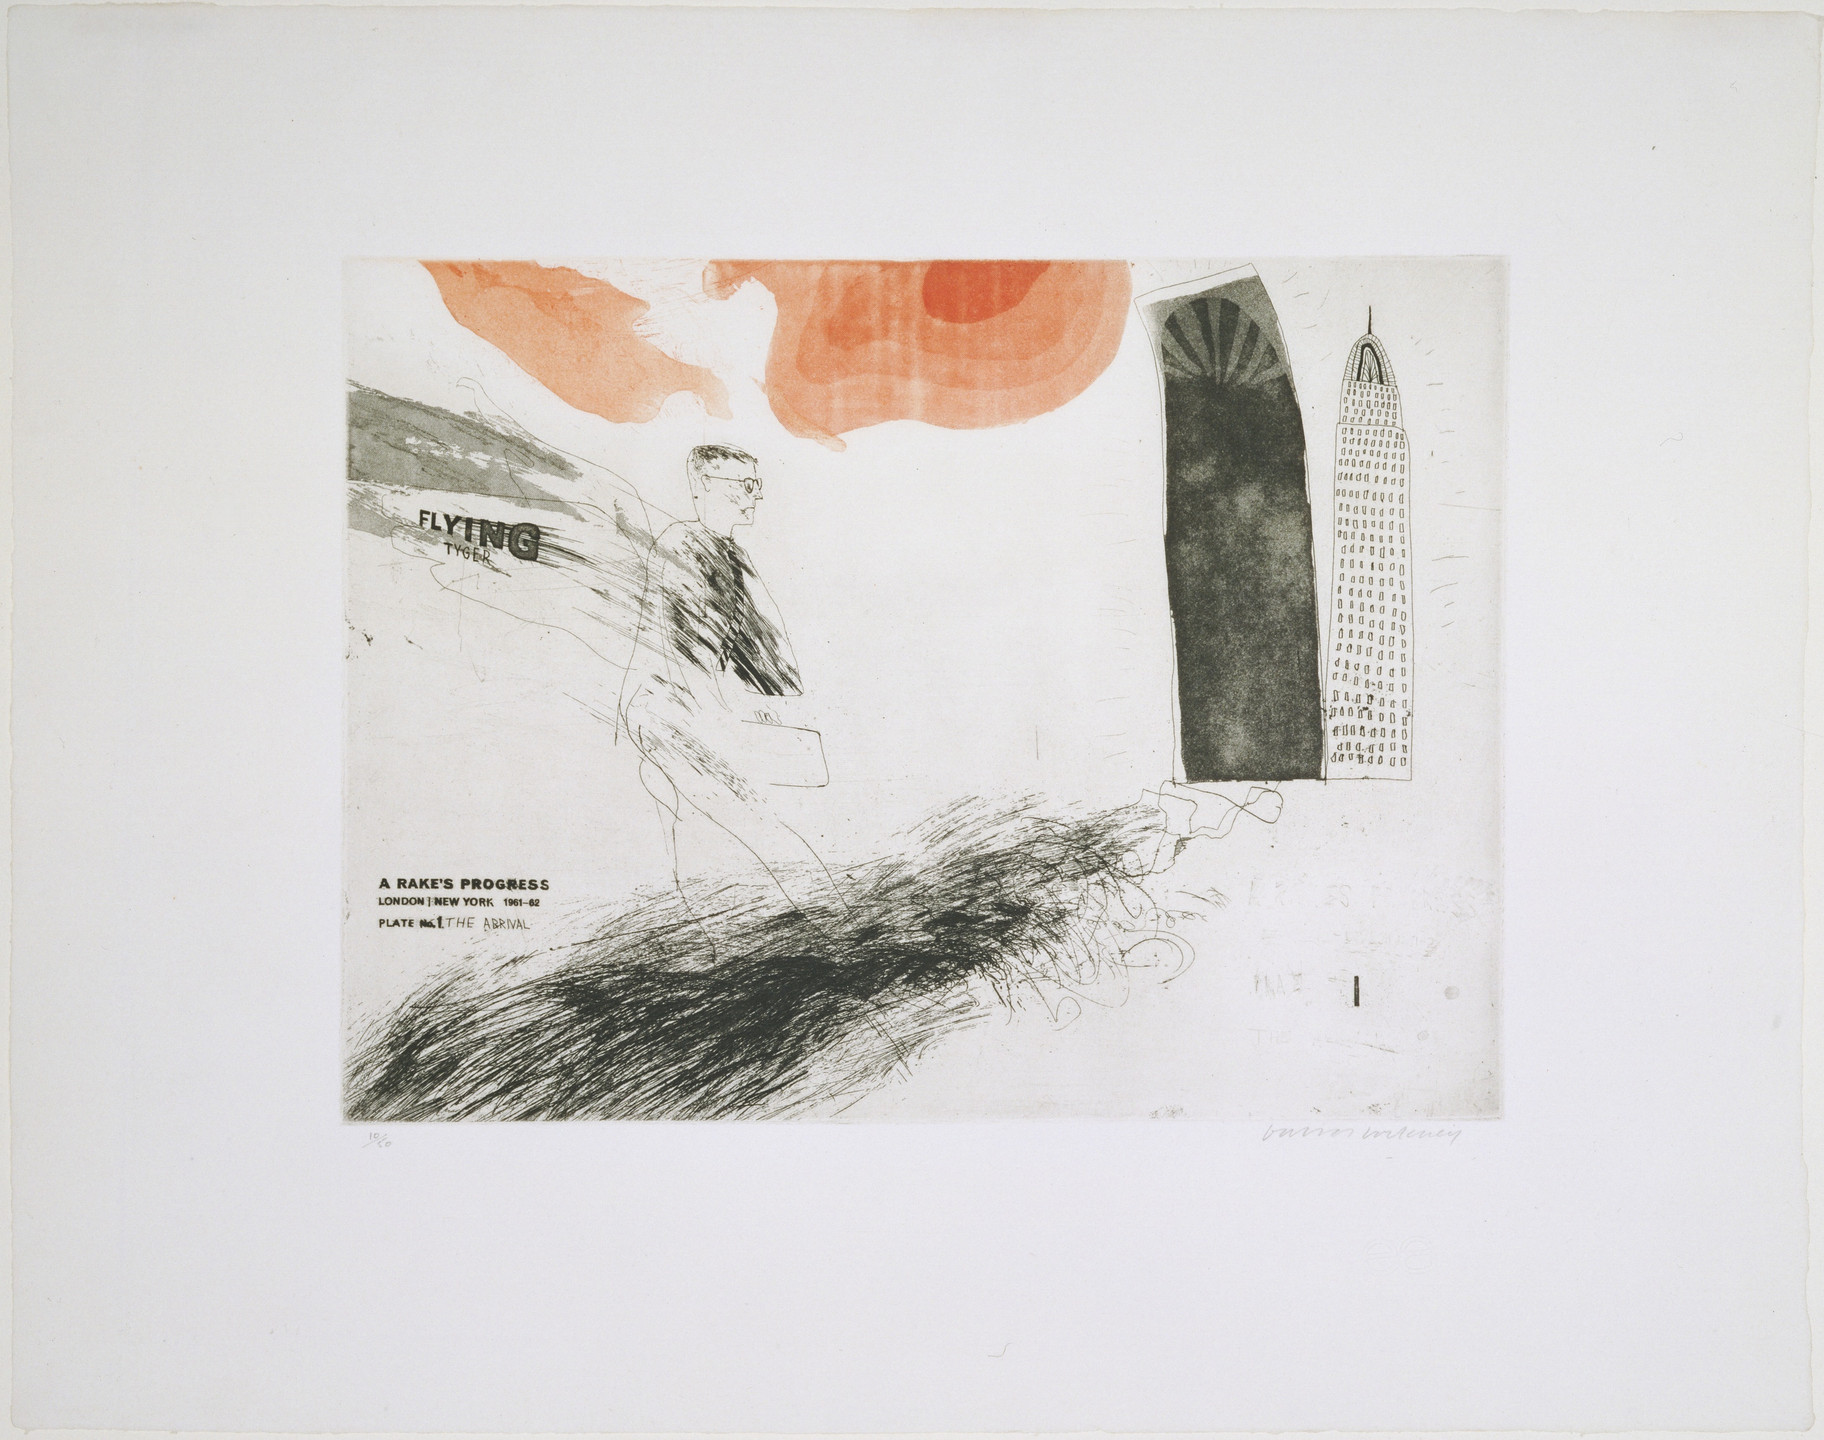 David Hockney. The Arrival (plate 1) from A Rake's Progress. 1961–62, published 1963